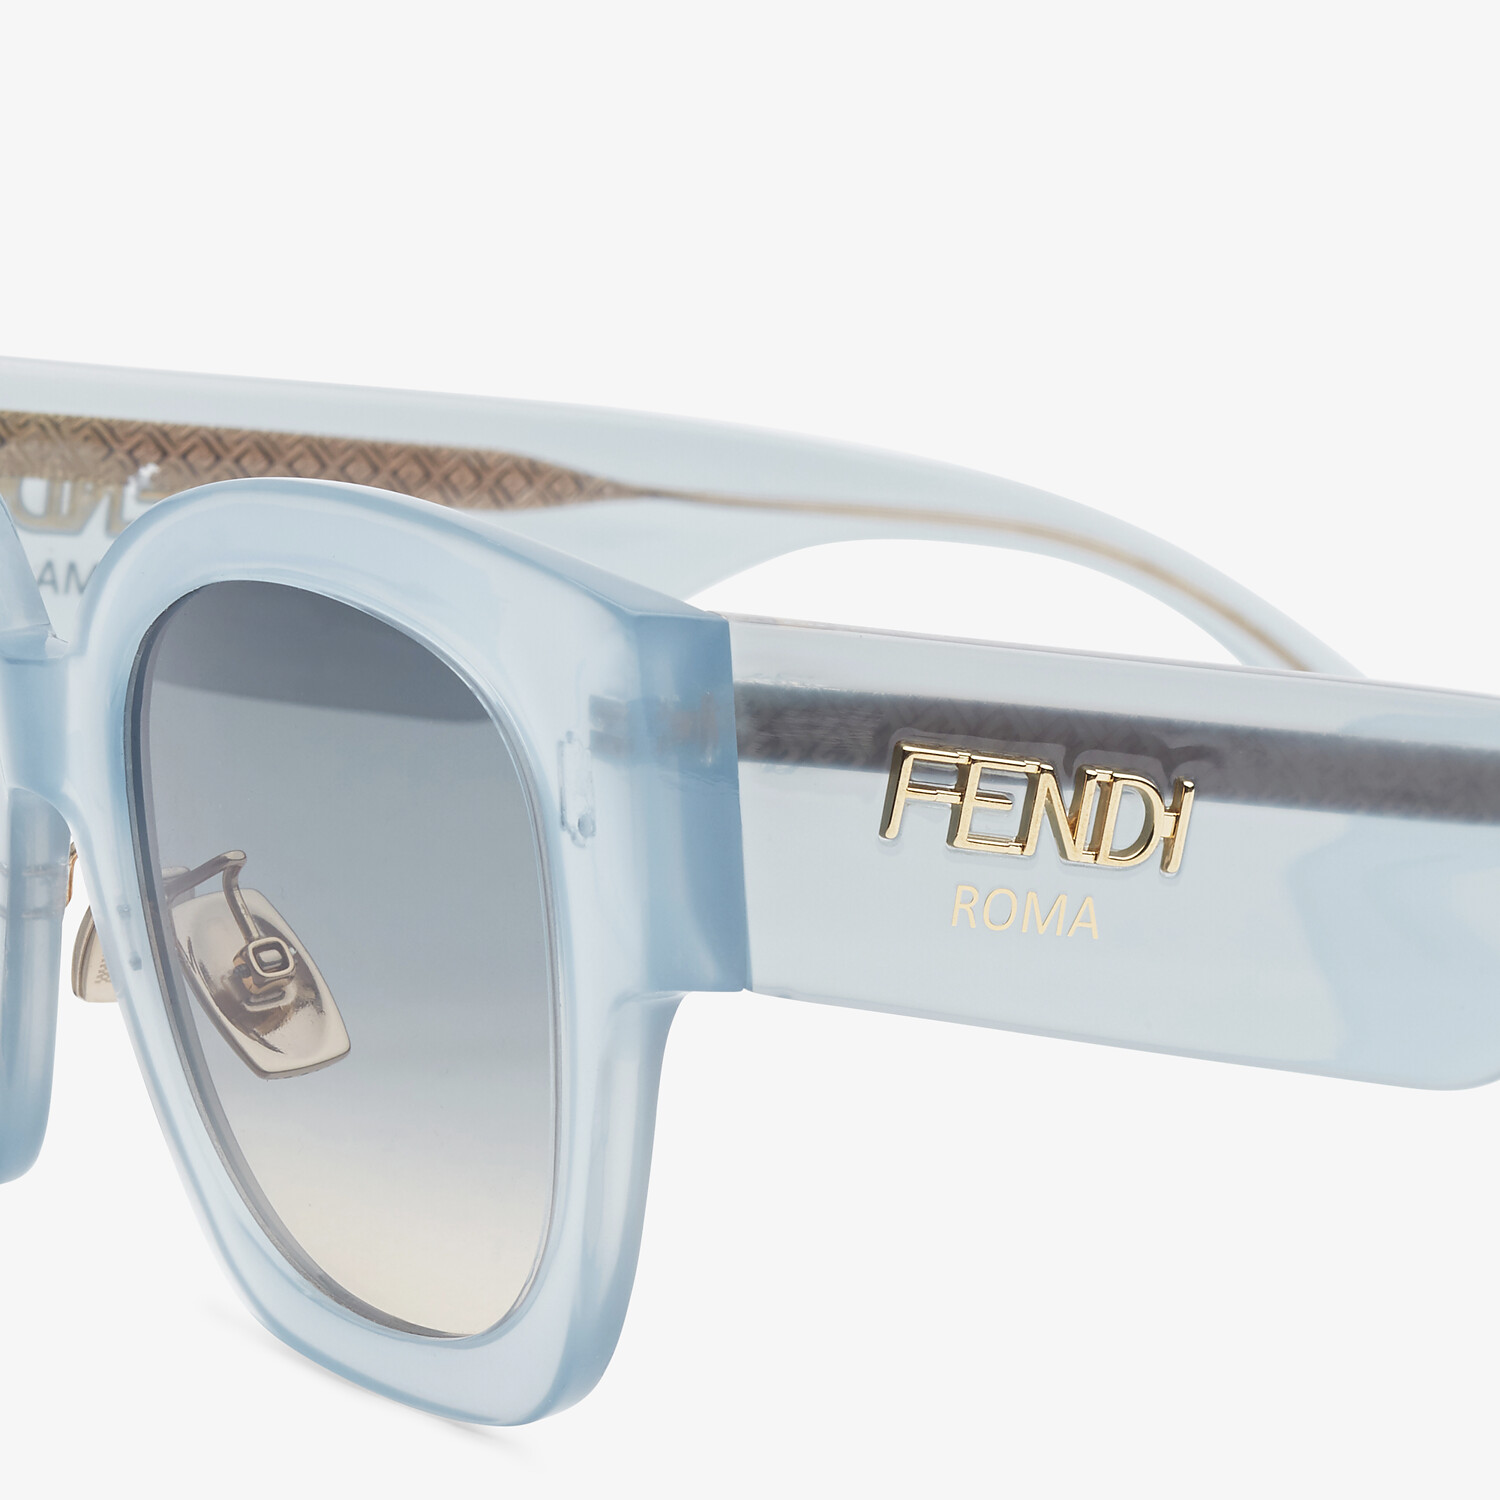 FENDI FENDI ROMA - Light blue acetate sunglasses - view 3 detail